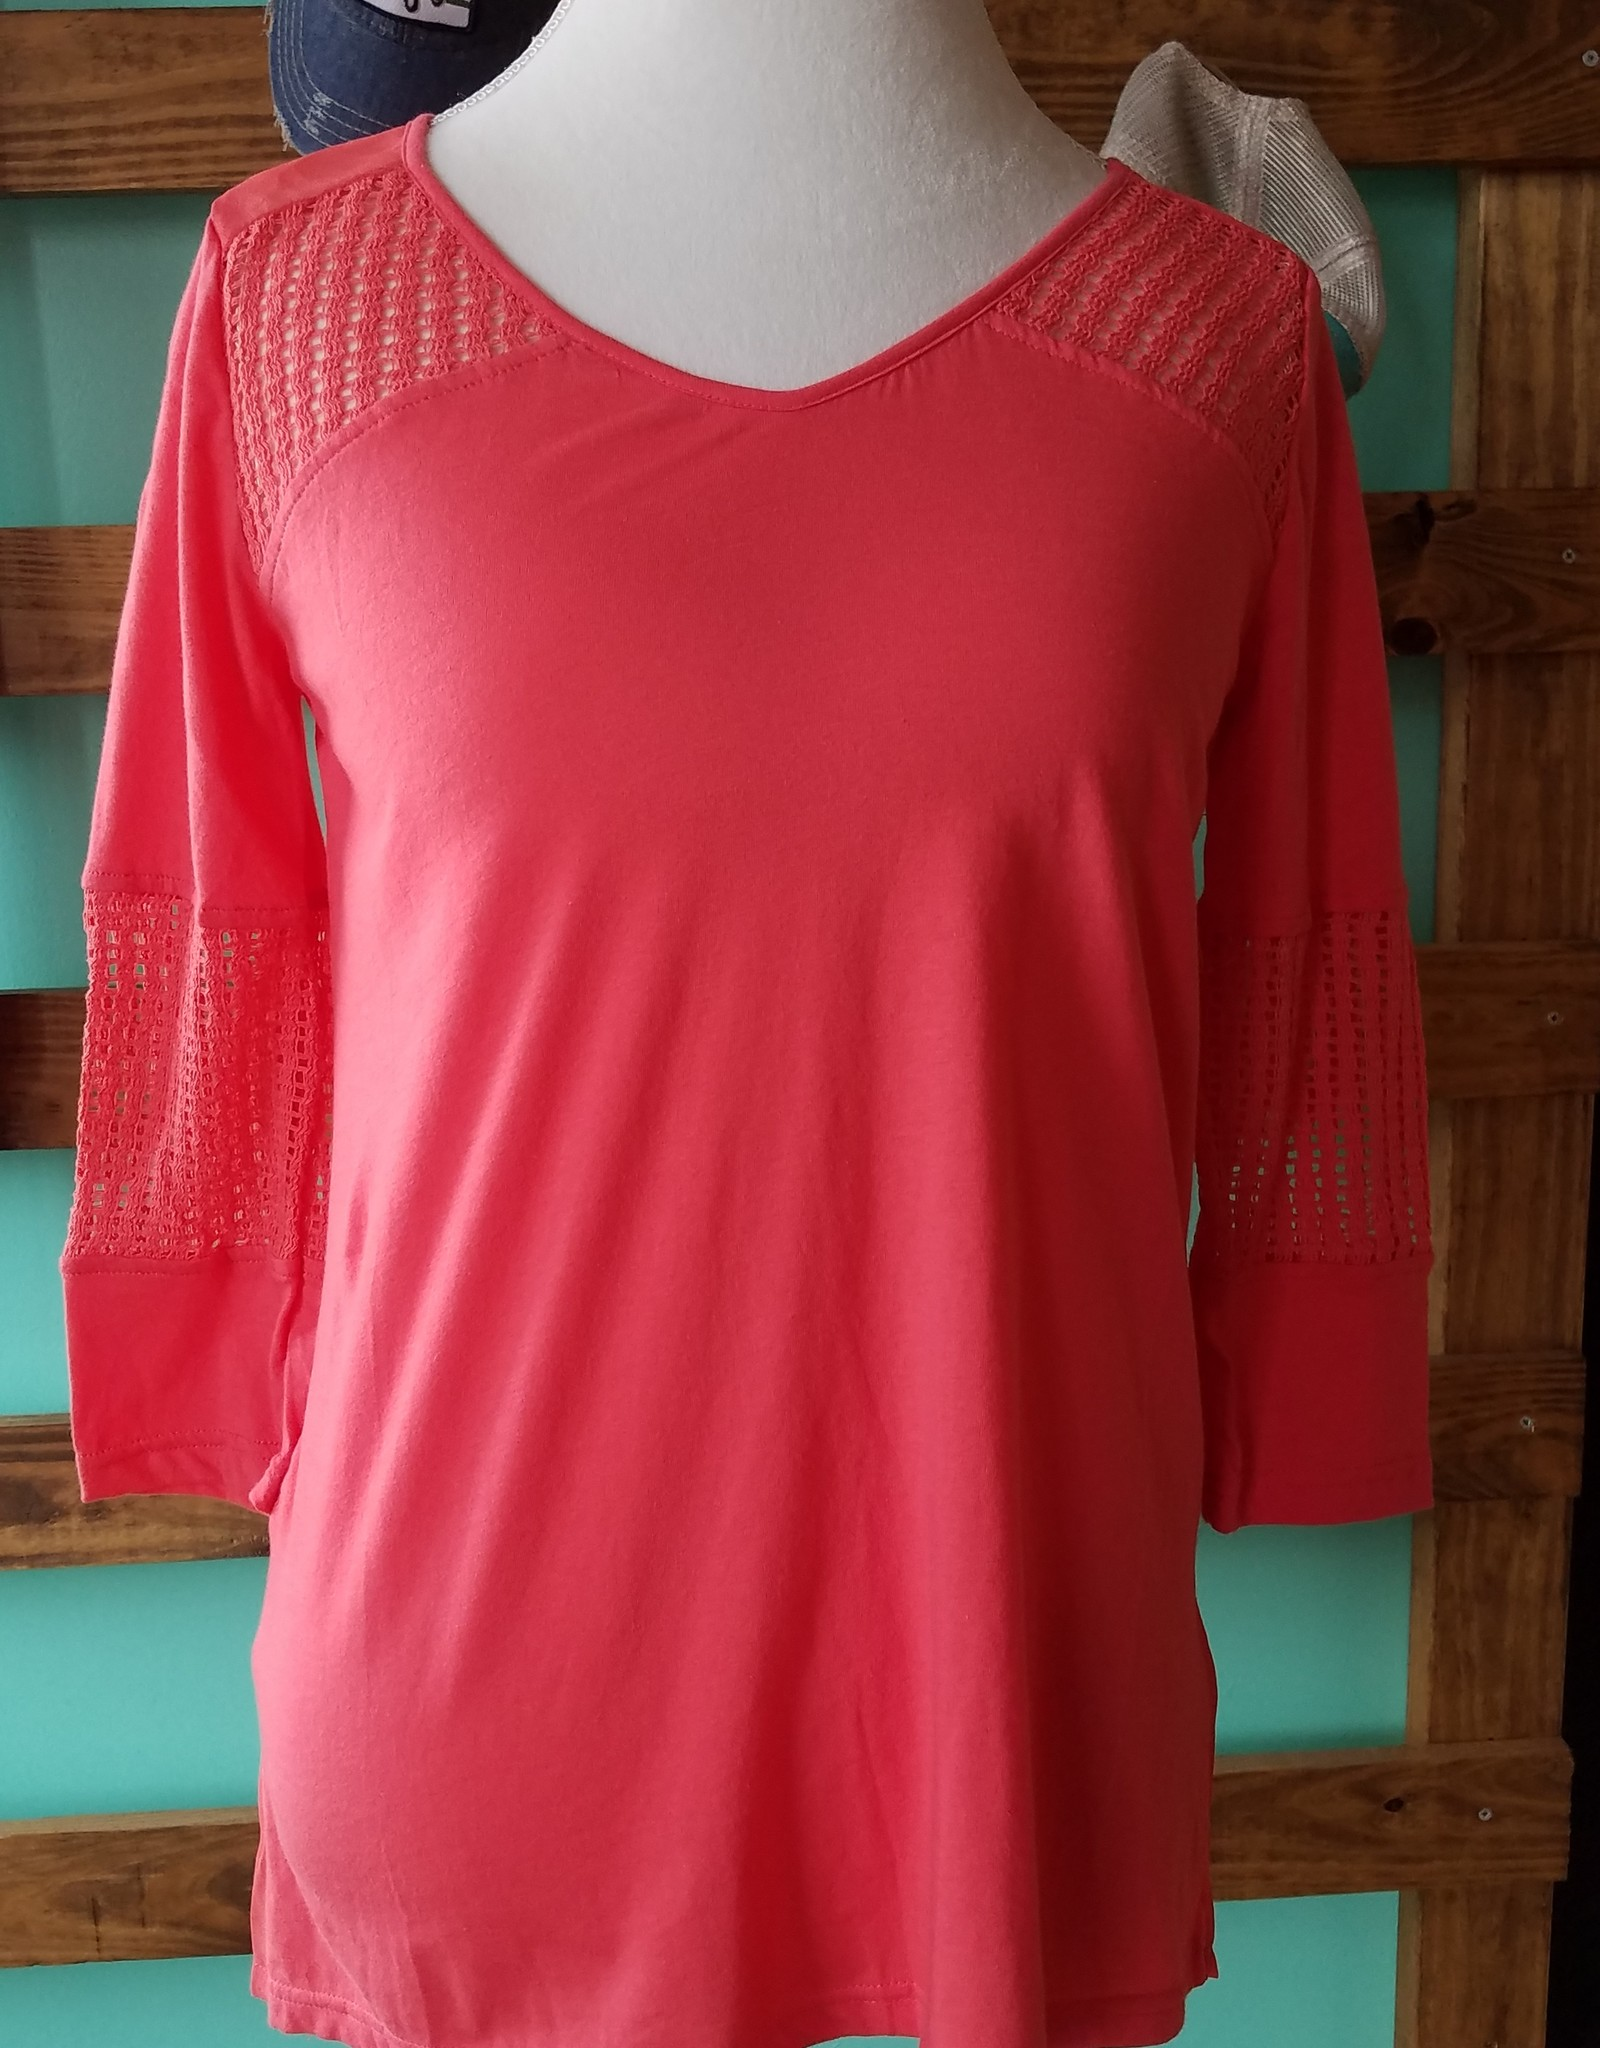 Monoreno Weaved Contrast Knit Top